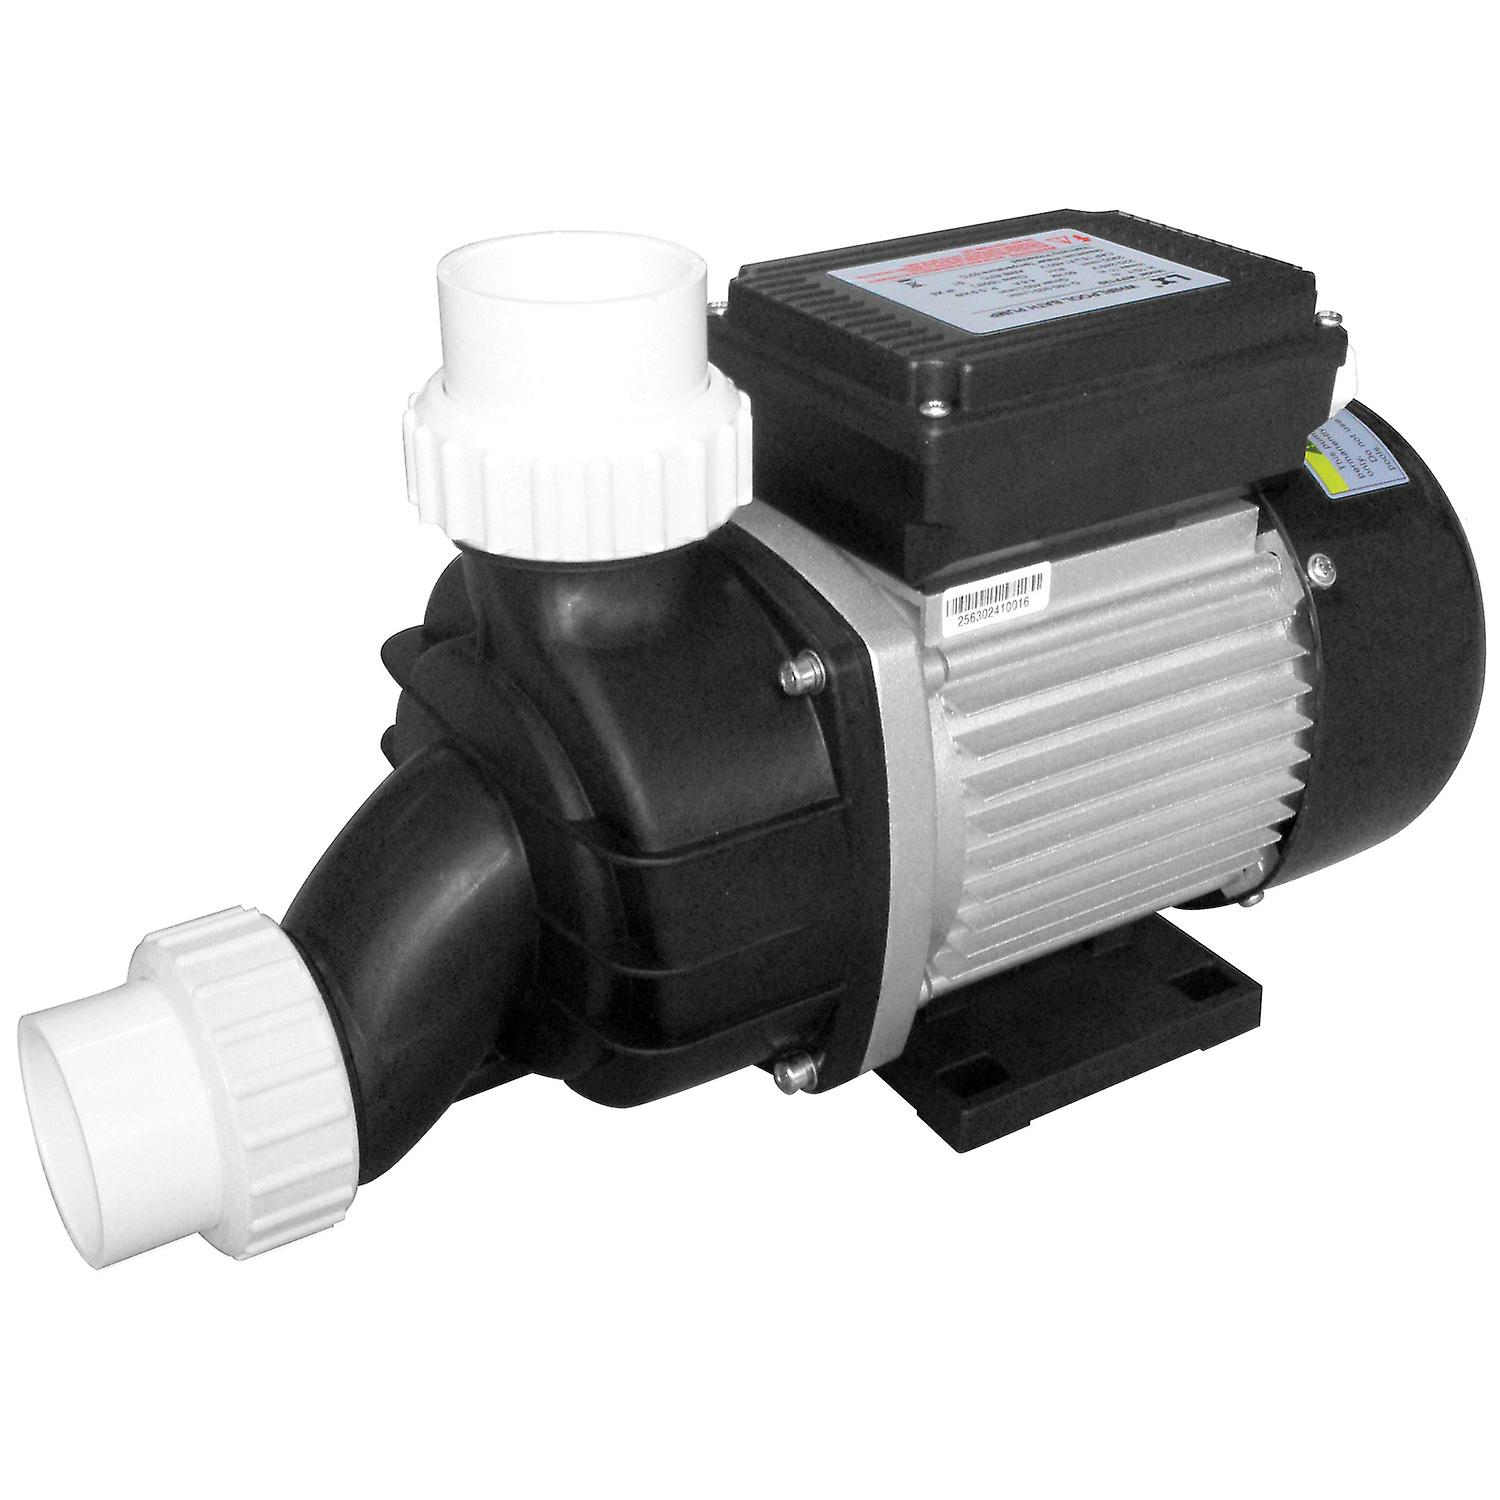 LX WPPE100 Pump 1 HP | Hot Tub | Spa | Whirlpool Bath | Water Circulation Pump | 220V/50Hz | 3.8 Amps